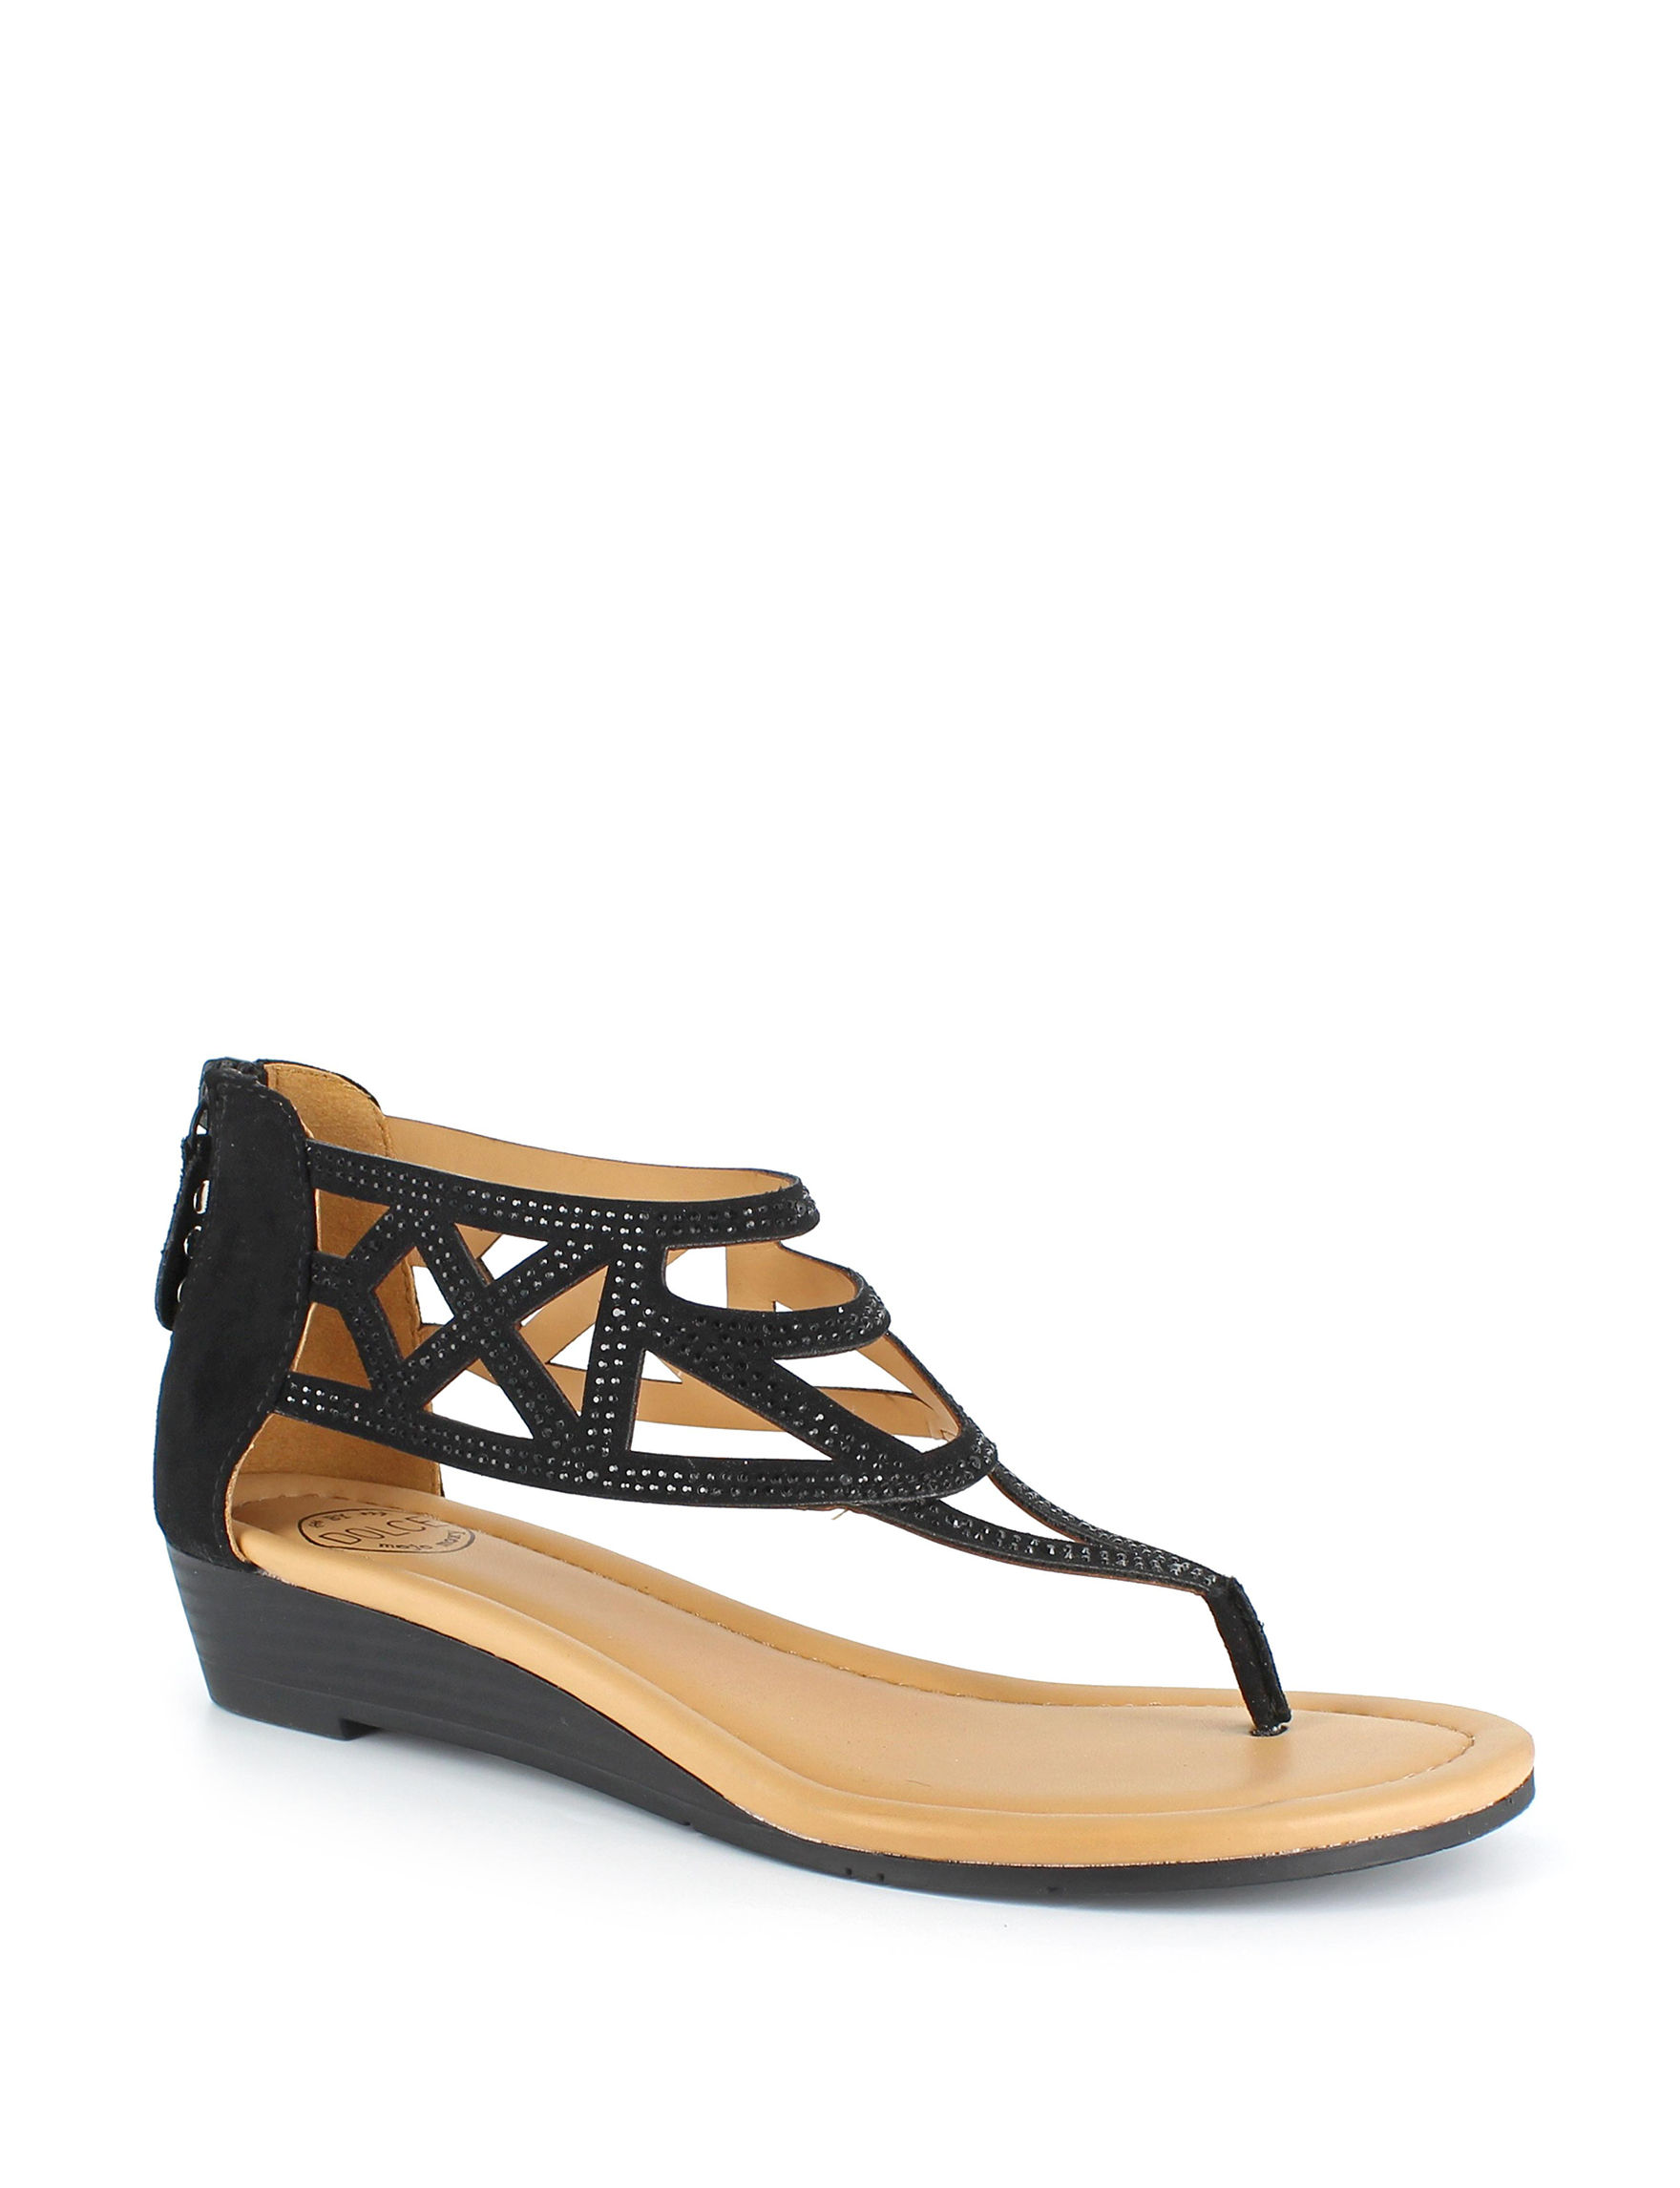 Dolce by Mojo Moxy Black Wedge Sandals